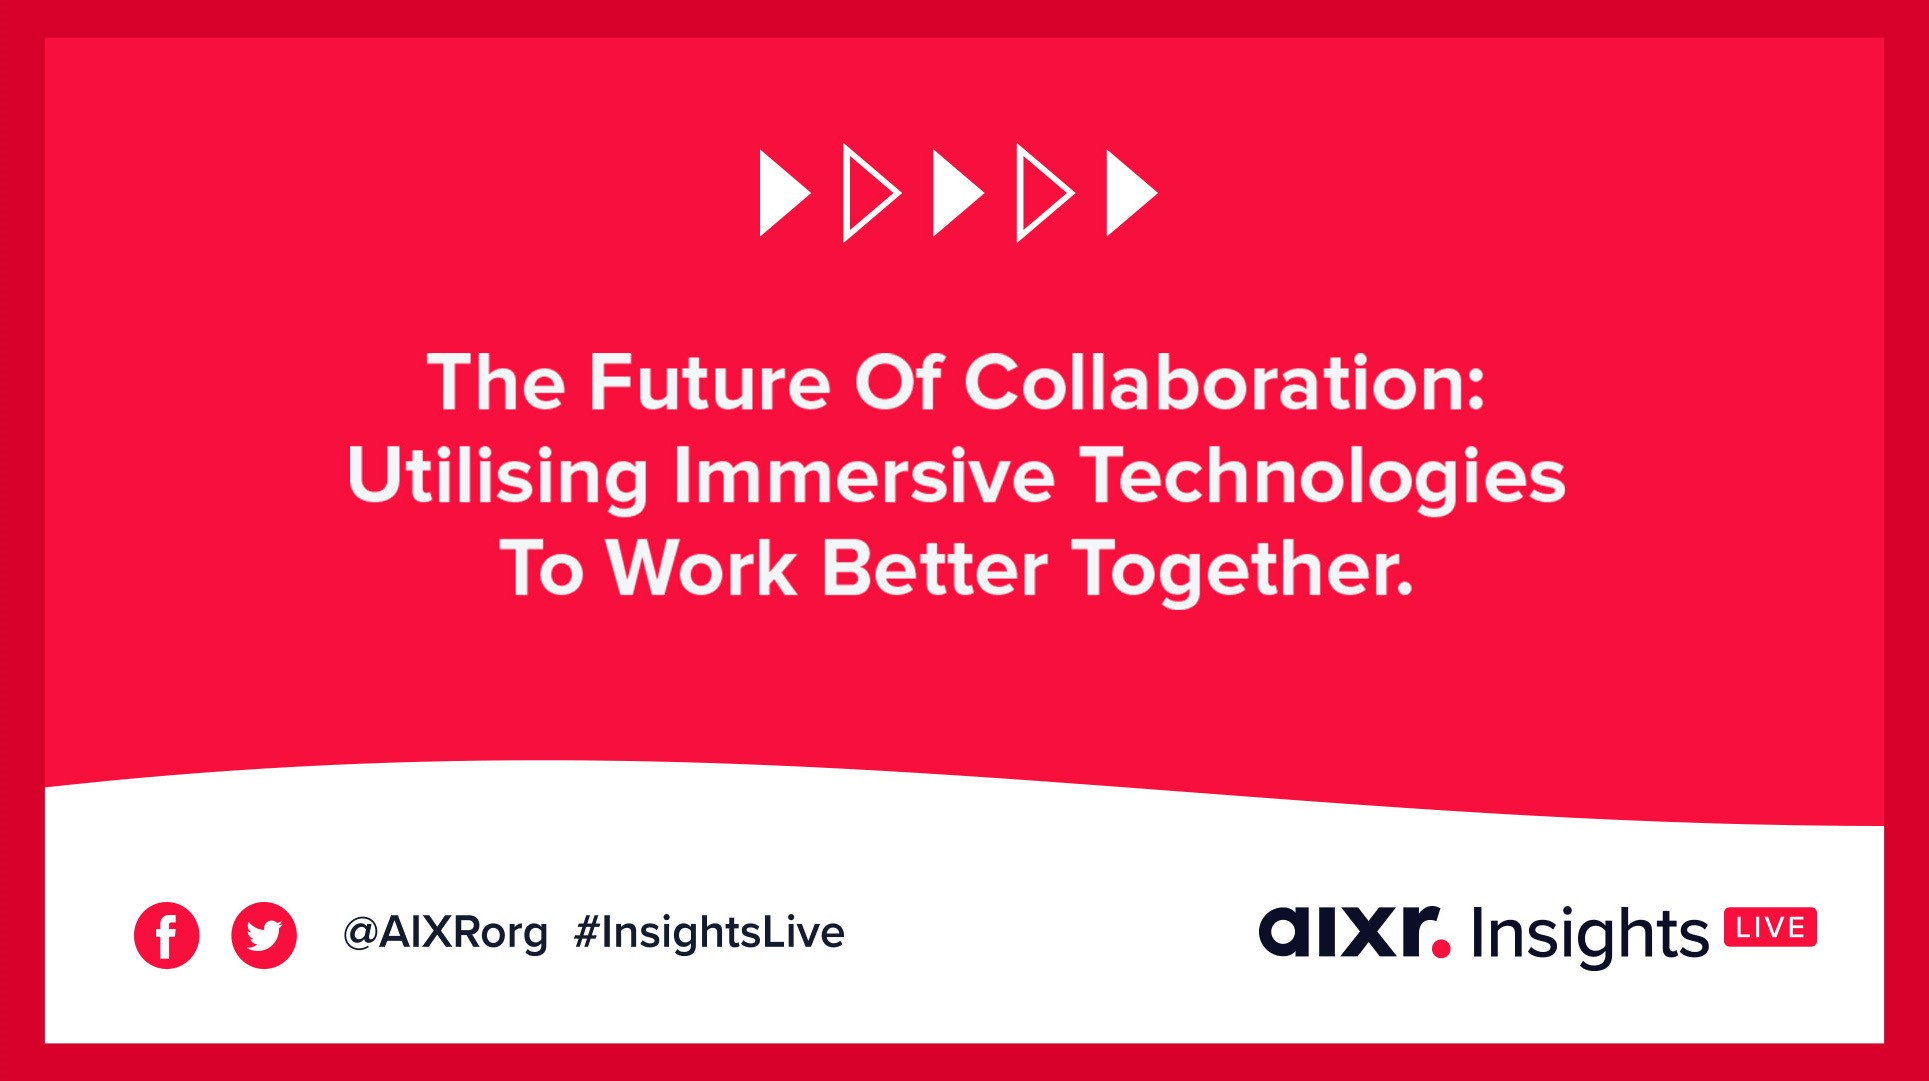 A banner for a webinar about how immersive technologies can help people work better together